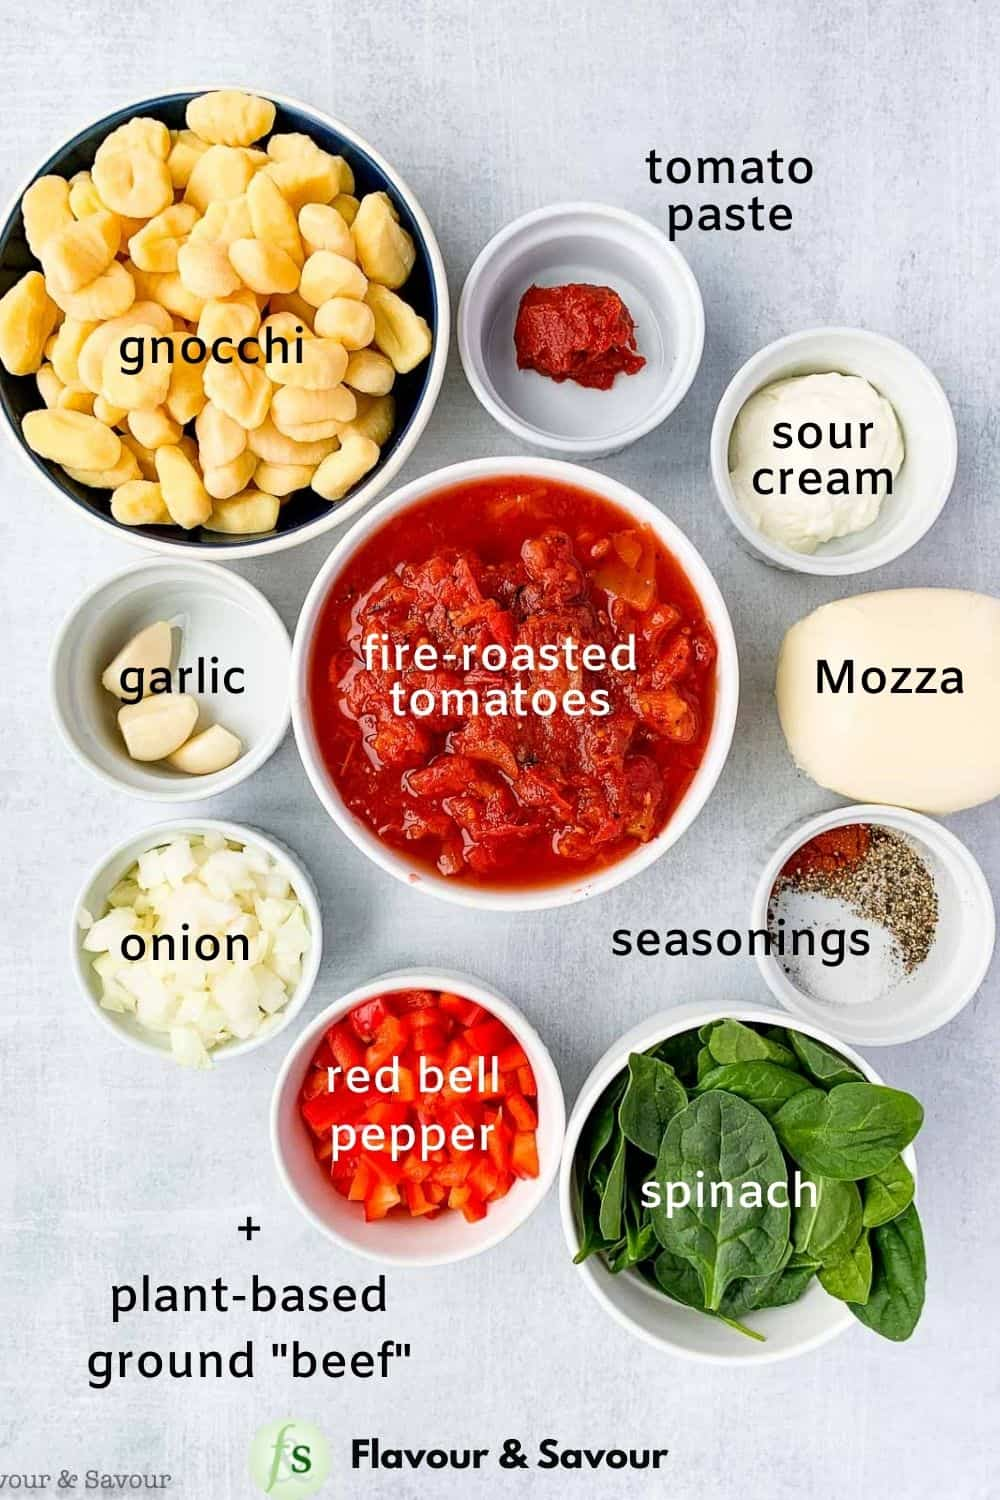 Ingredients with labels for skillet-baked cheese and tomato gnocchi casserole with plant-based ground beef.